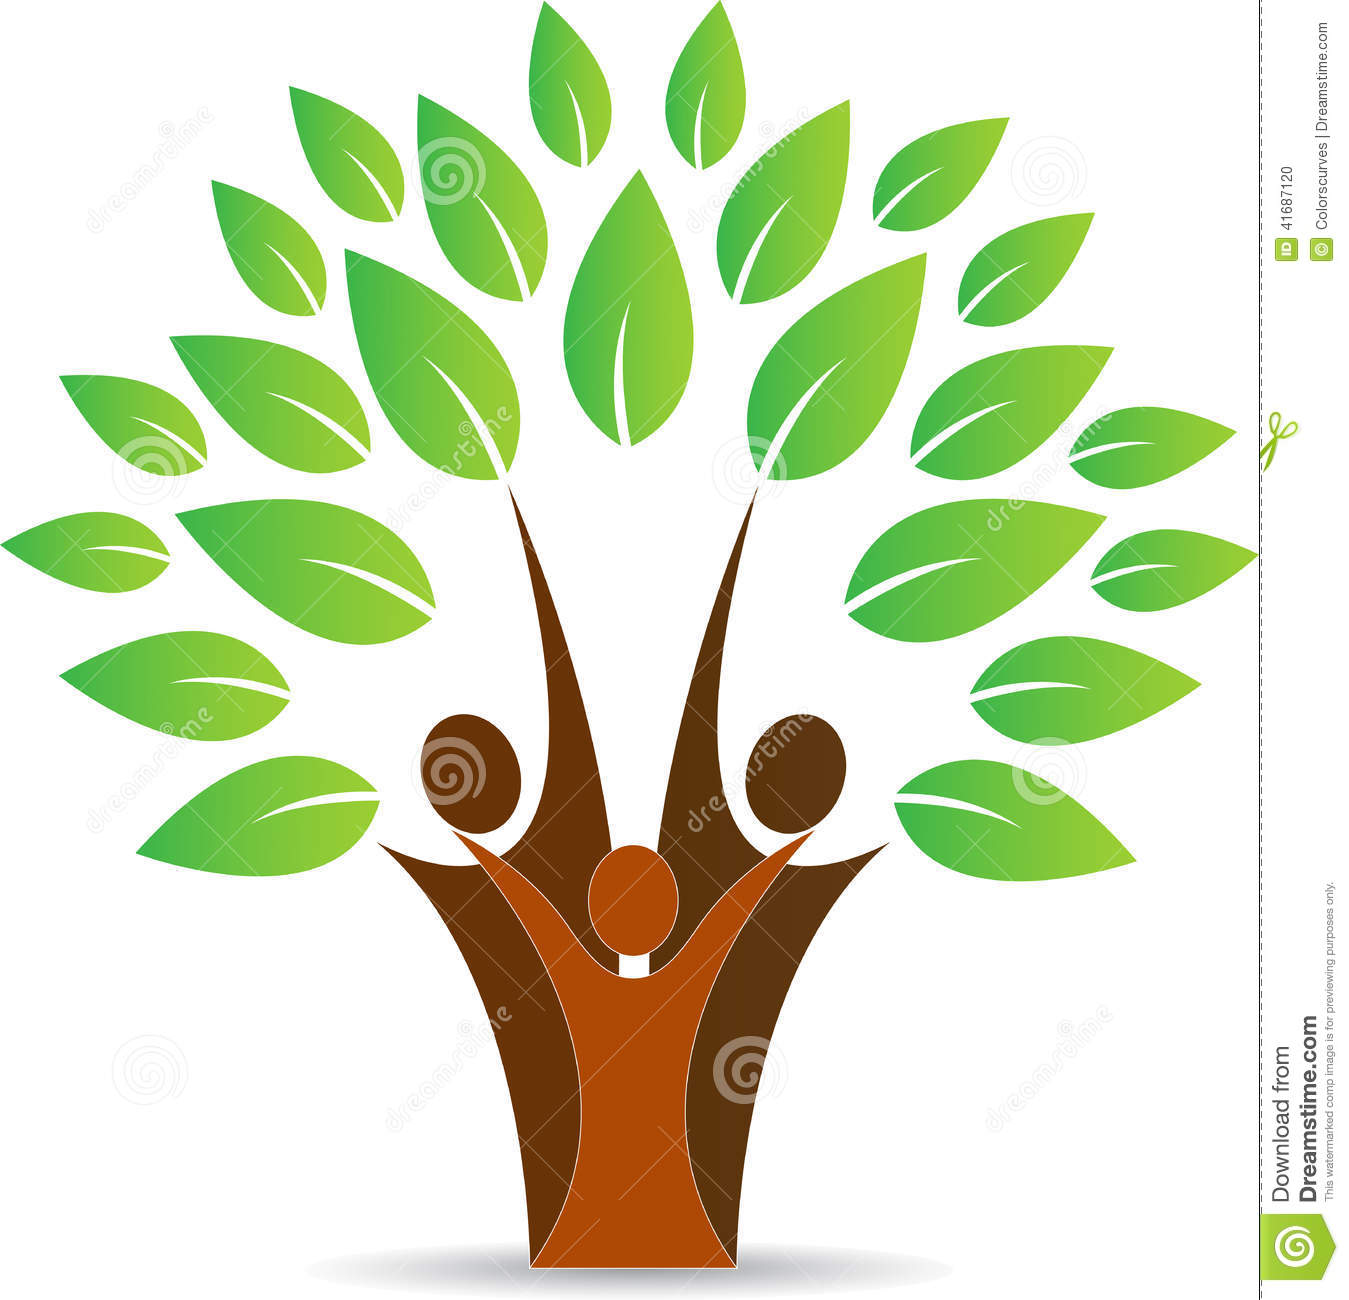 vector drawing represents family people tree design.